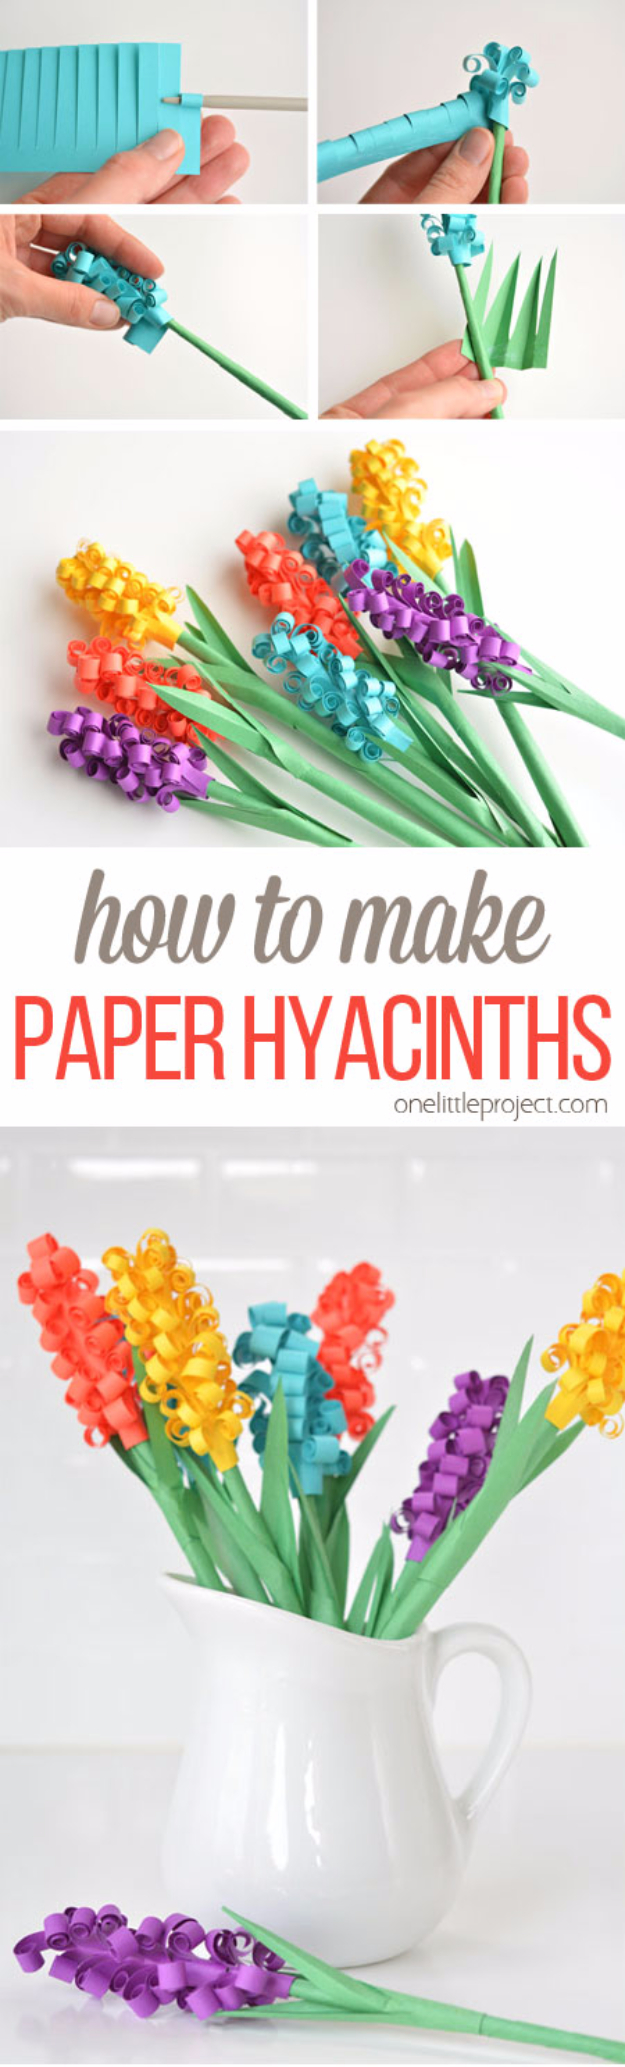 Easy DIY Projects - Paper Hyacinth Flowers - Easy DIY Crafts and Projects - Simple Craft Ideas for Beginners, Cool Crafts To Make and Sell, Simple Home Decor, Fast DIY Gifts, Cheap and Quick Project Tutorials #diy #crafts #easycrafts